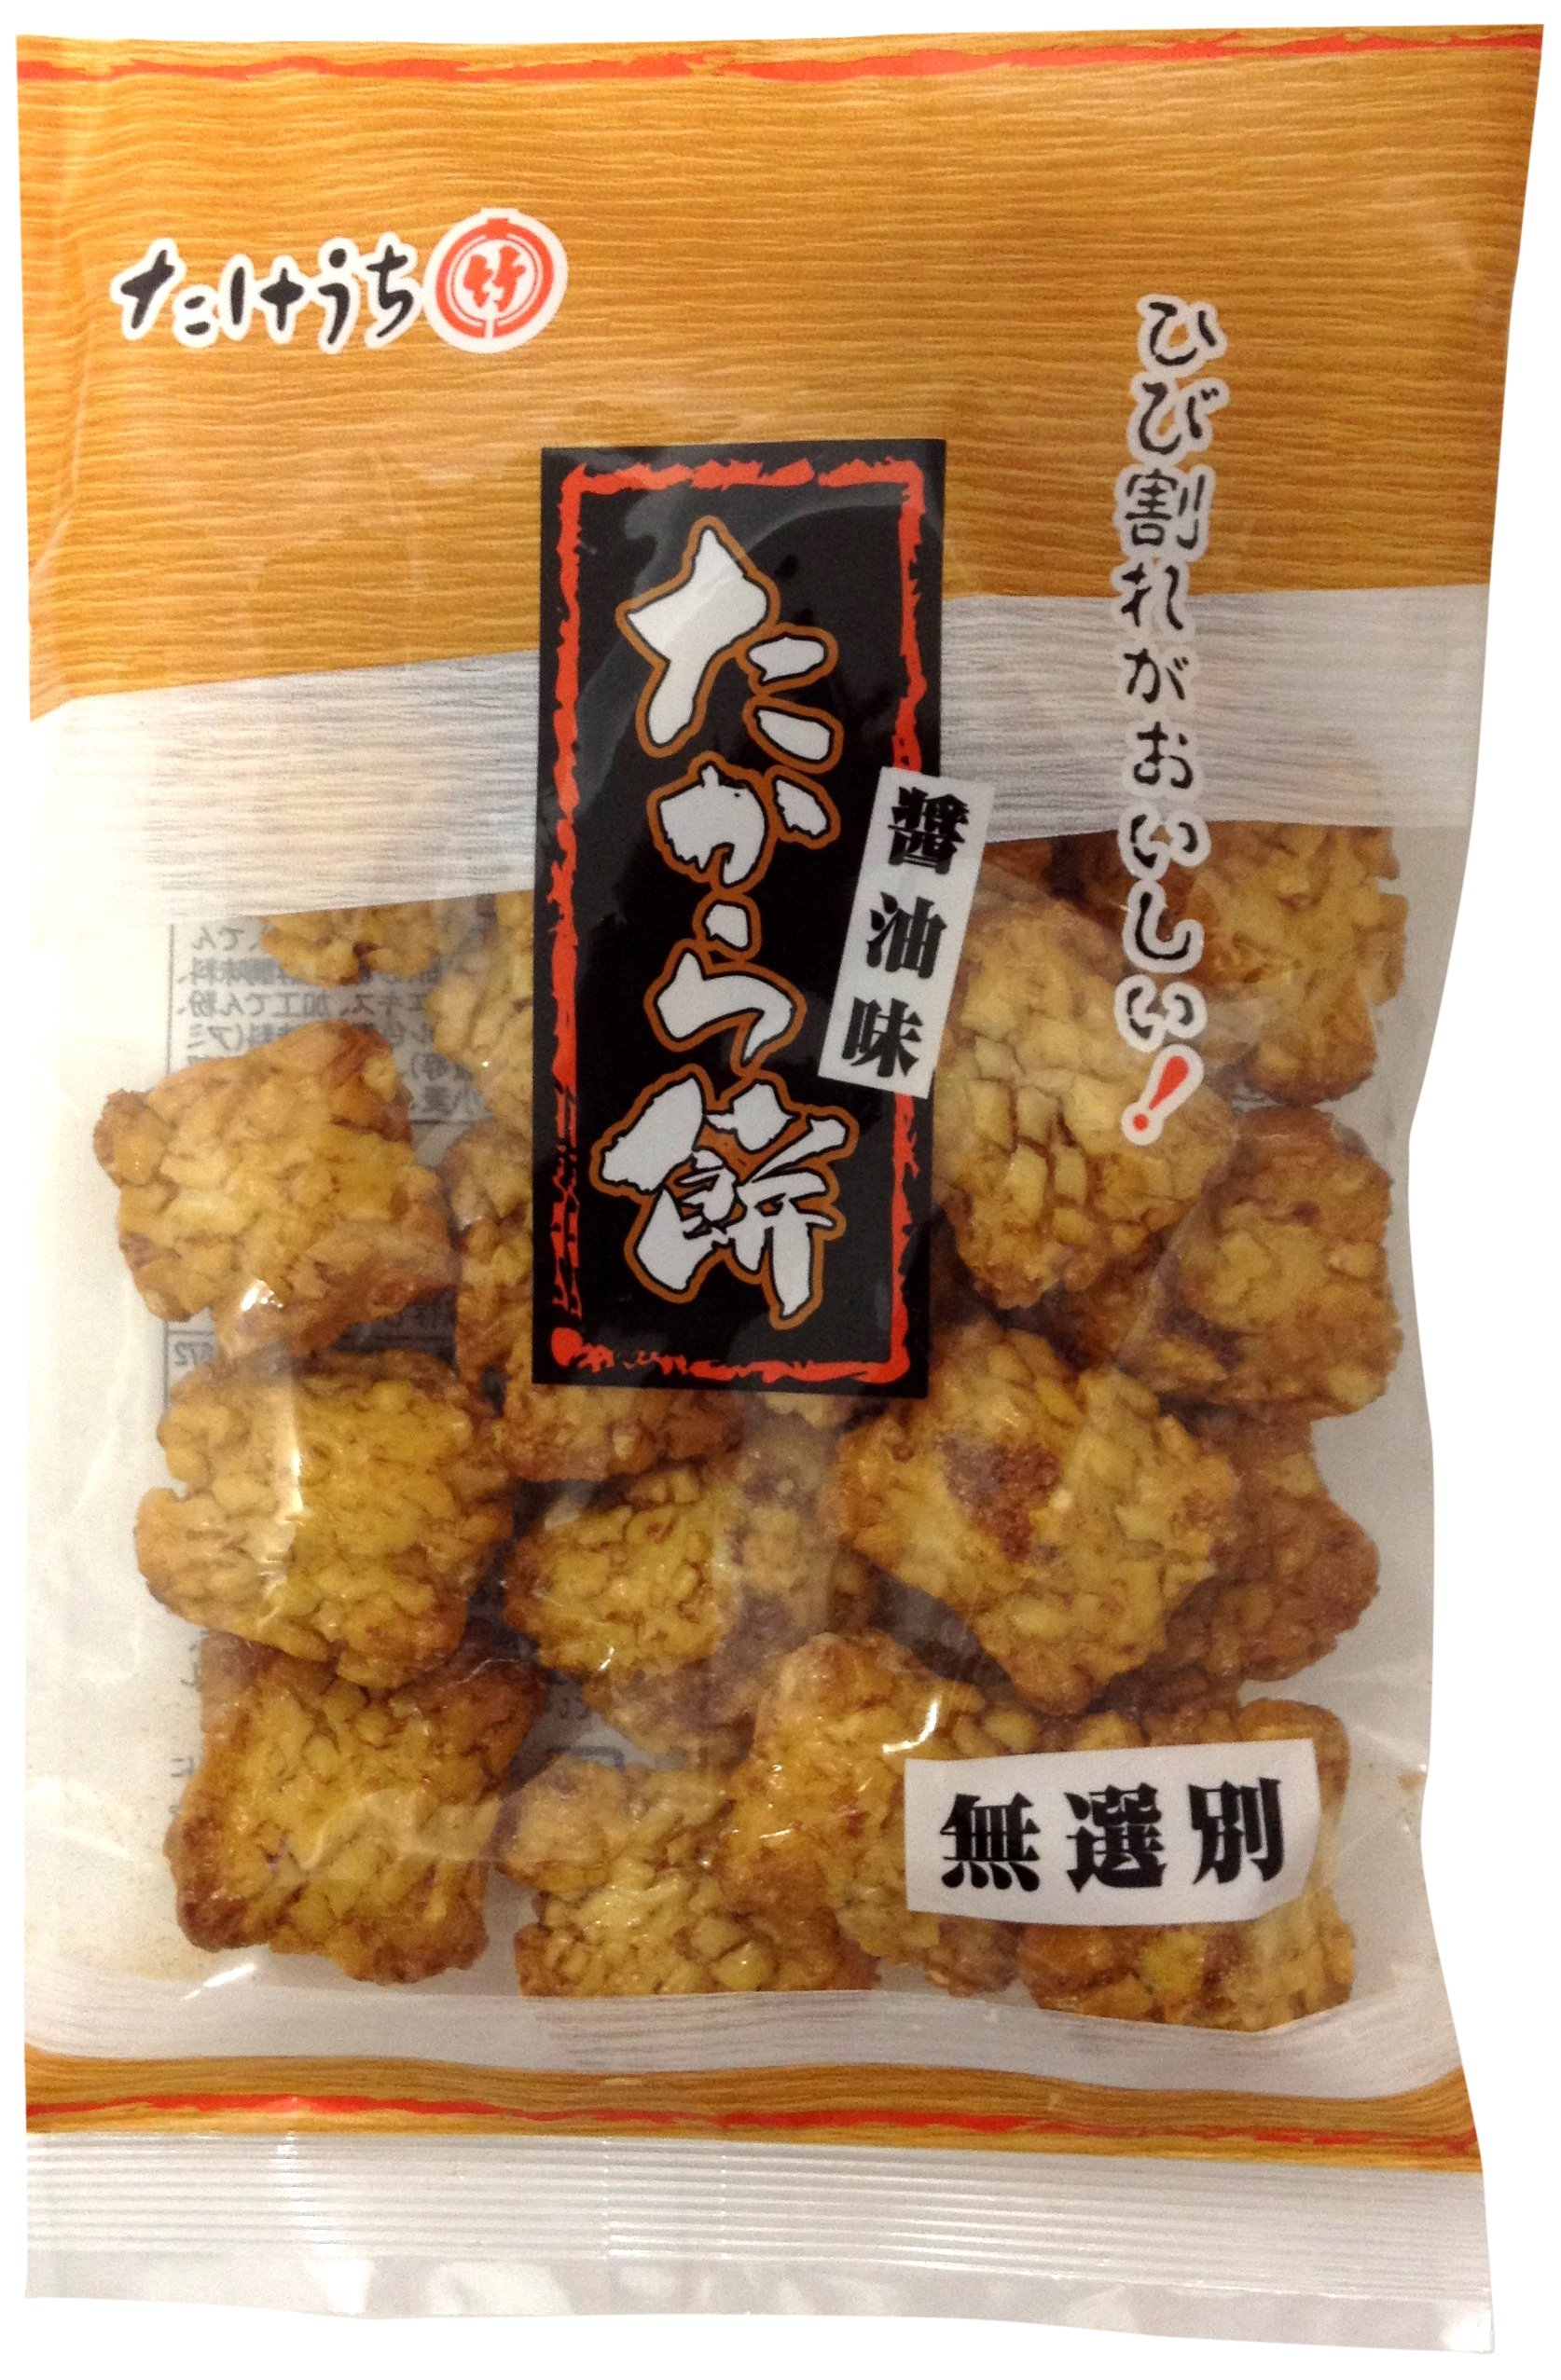 75gX15 bags mochi soy sauce and because was Takeuchi confectionery by Takeuchi confectionery